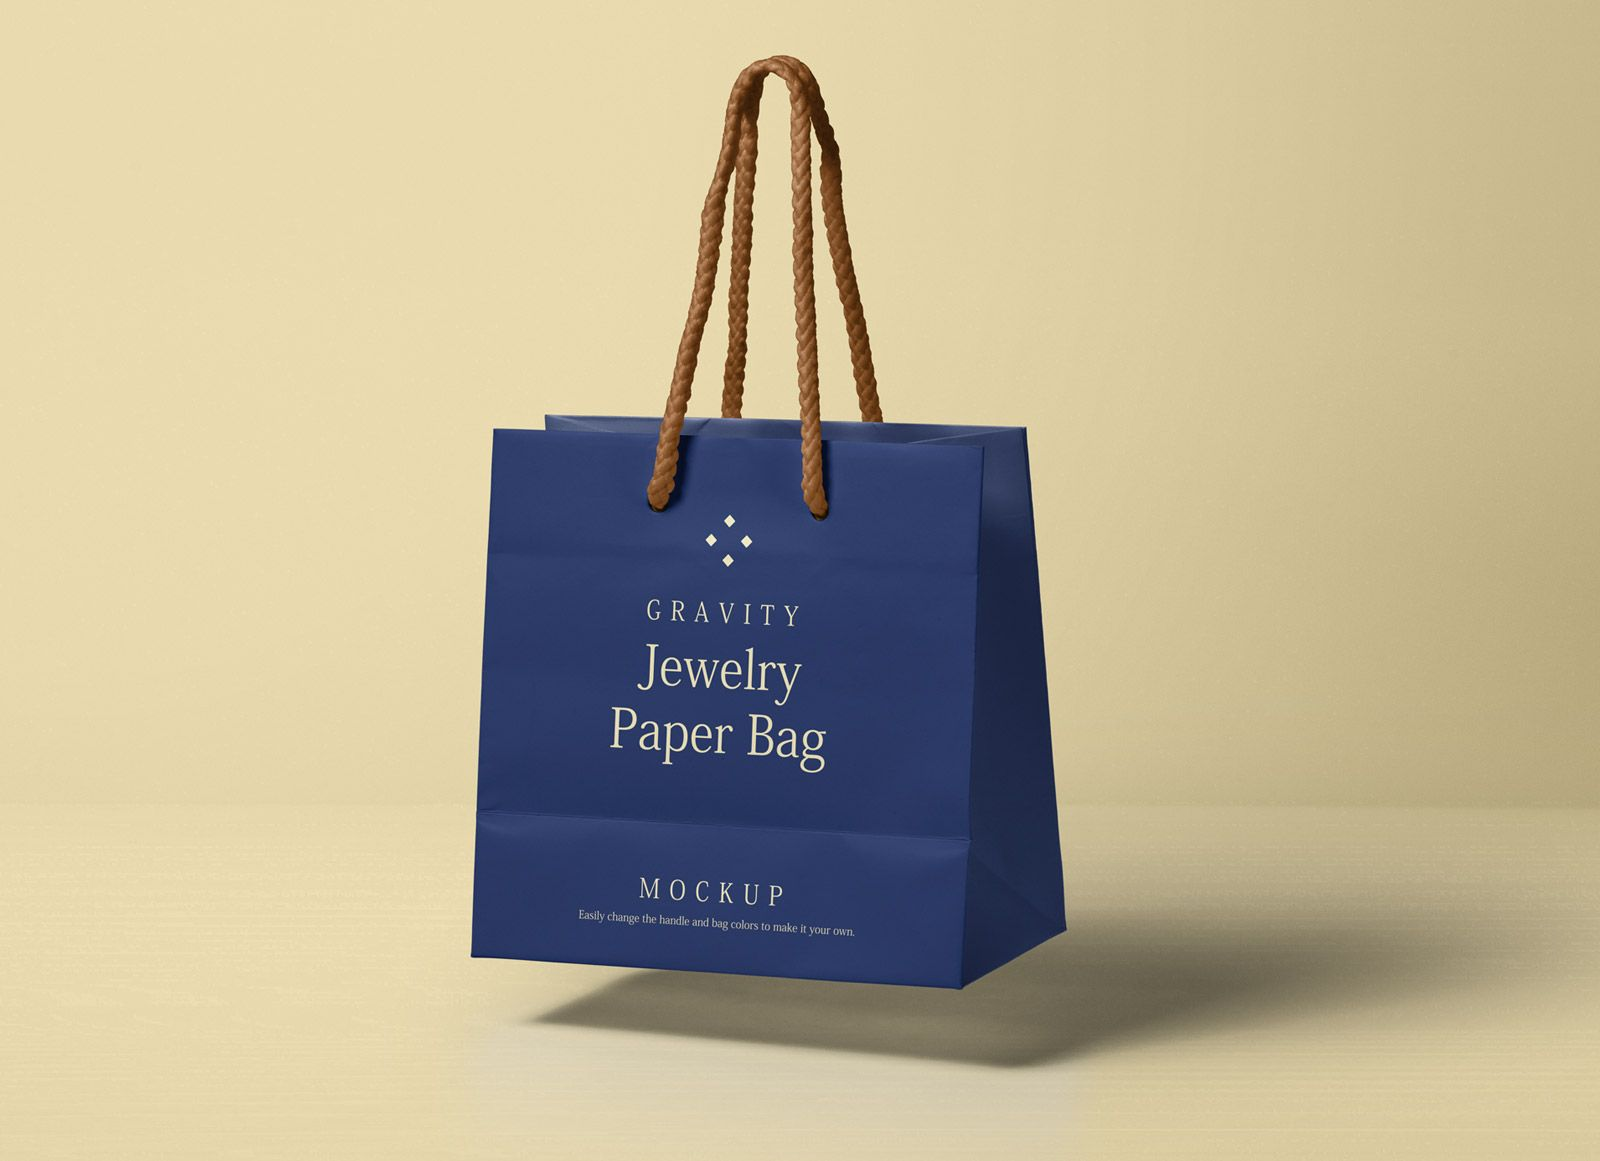 Download This Is A Psd Jewelry Paper Bag Mockup To Complement Our Psd Shopping Bag Mockup Series You Can Change The Handle And Bag Color Acco Bag Mockup Paper Bag Bags